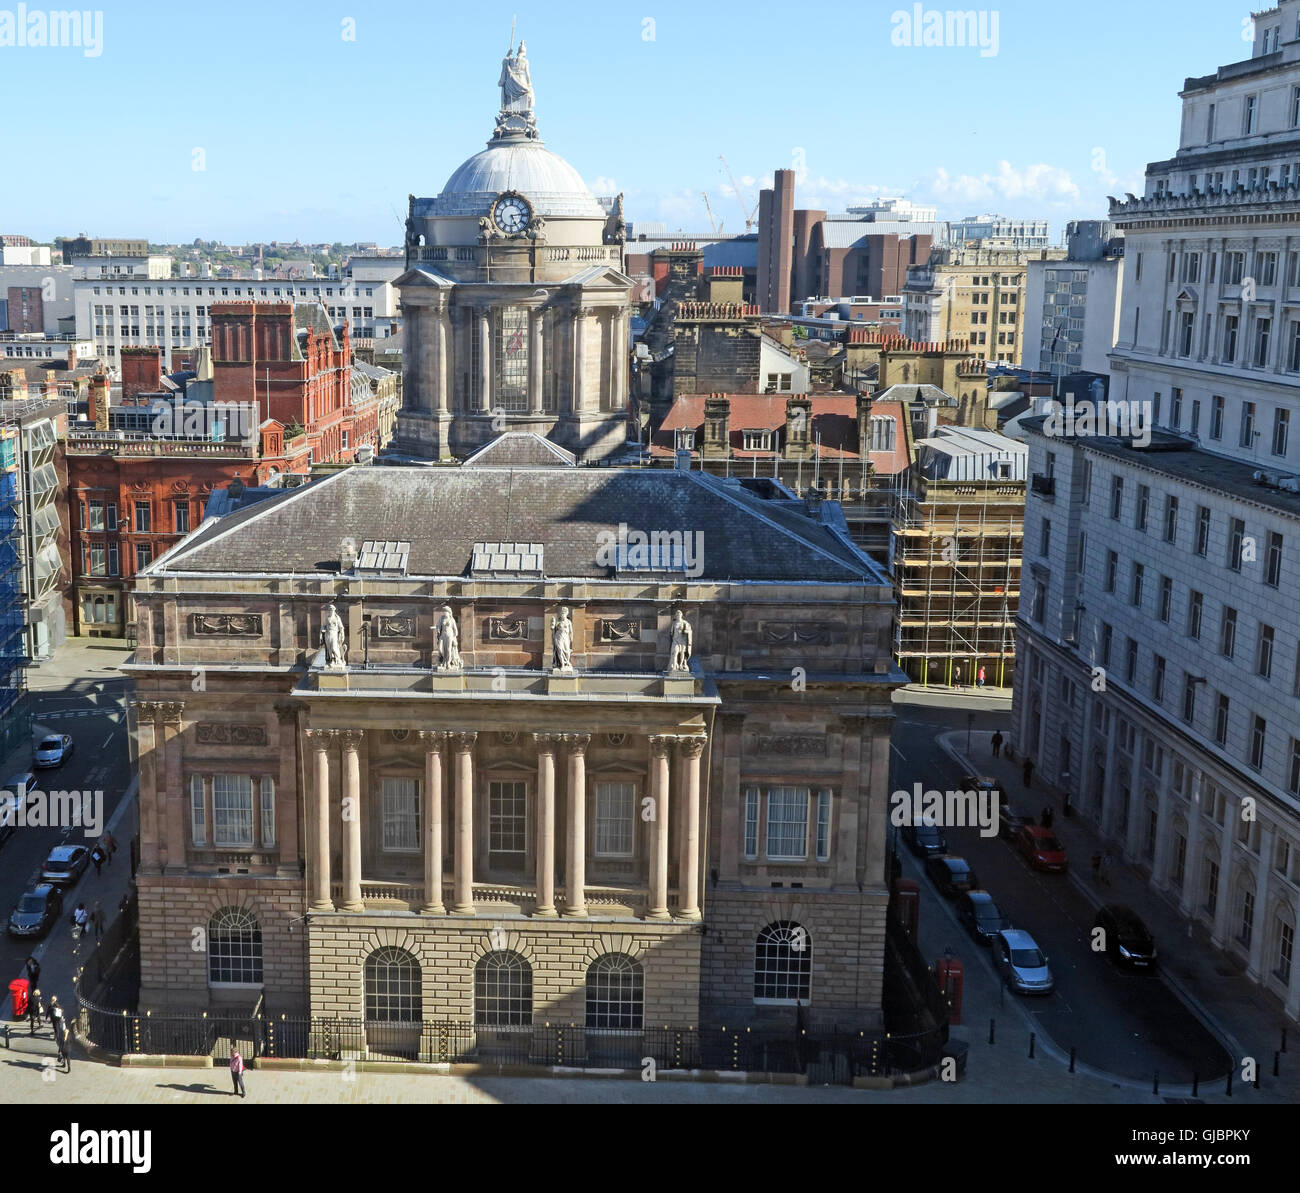 Liverpool Town Hall, High Street, Liverpool, Merseyside, North West England, L2 3SW - Stock Image